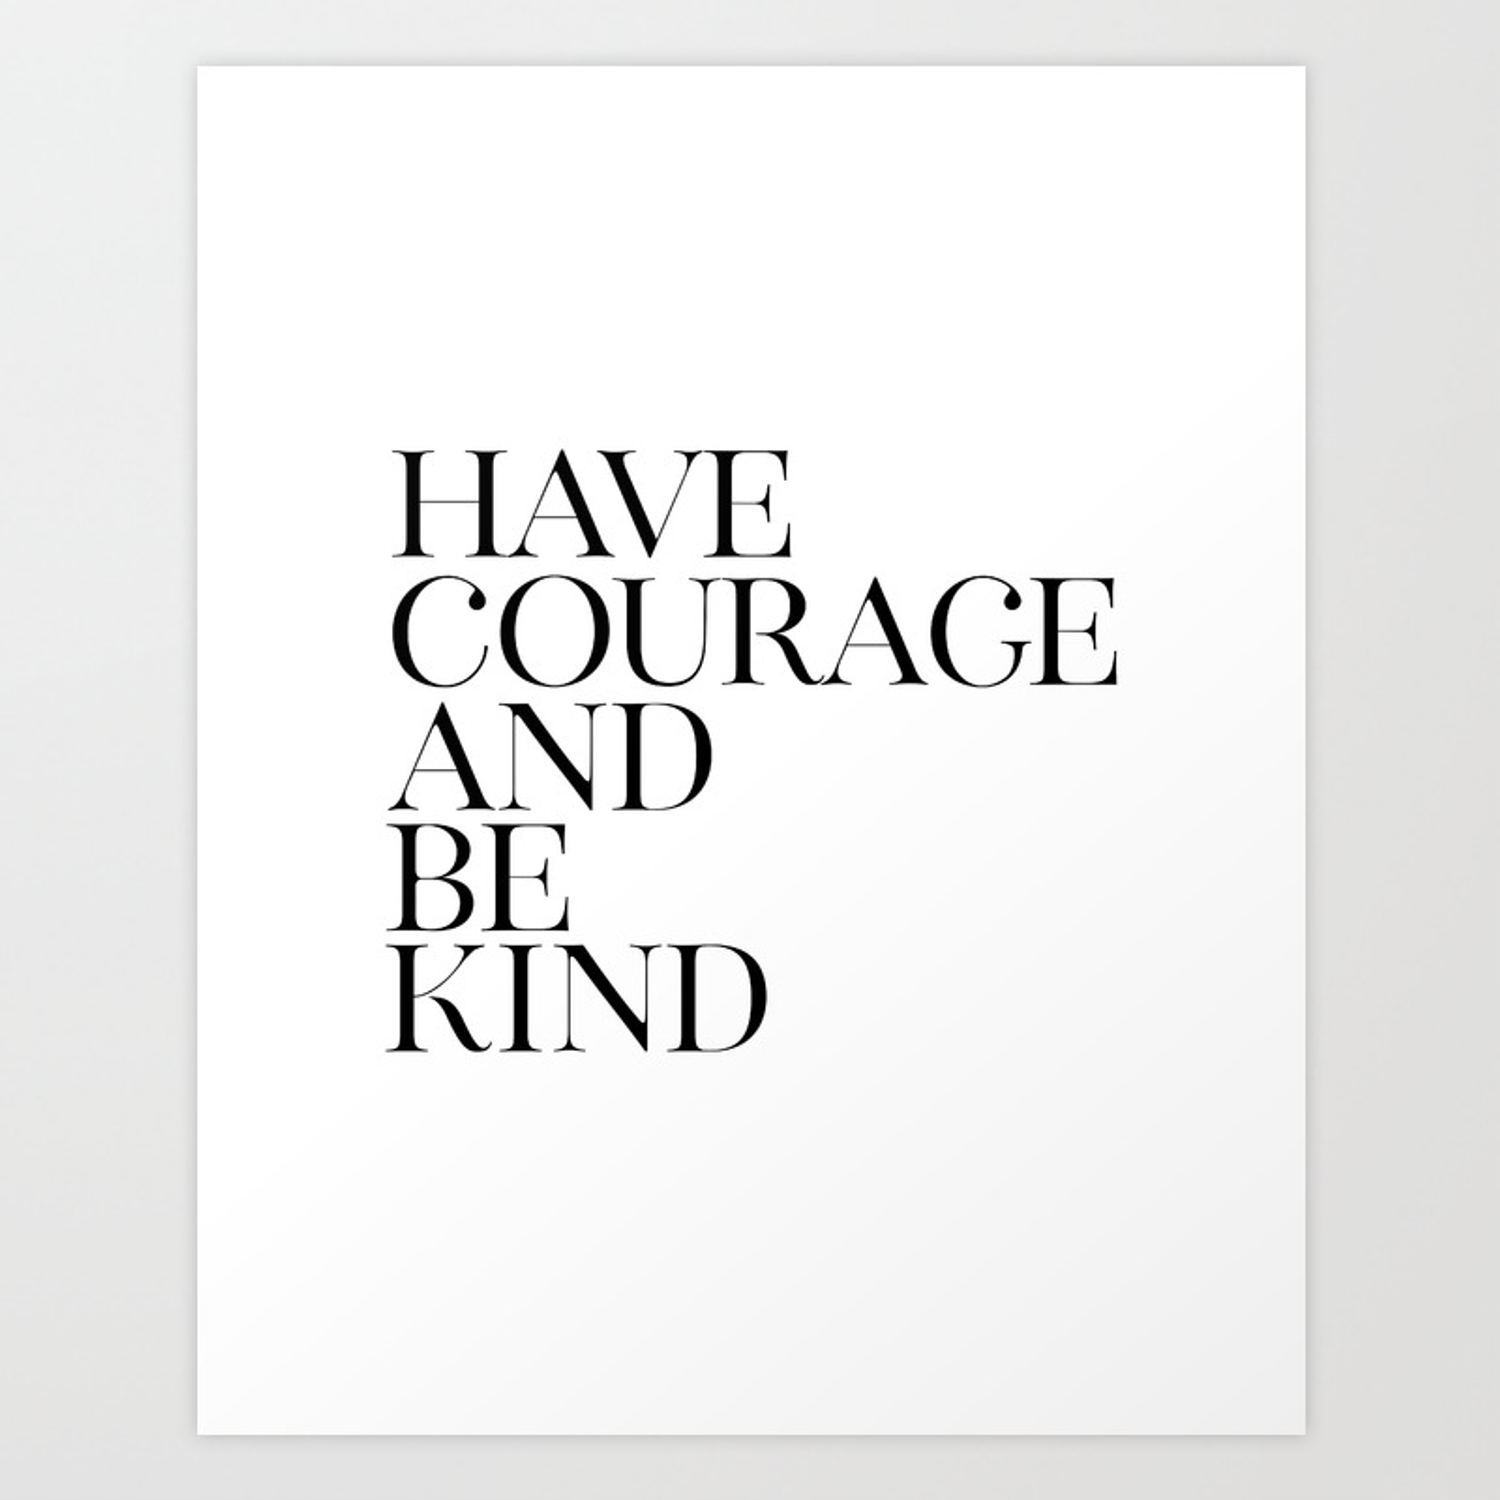 photo relating to Have Courage and Be Kind Printable referred to as Contain Braveness And Be Type, Black White Artwork, Residence Decor, Printable Artwork, Typography Estimate Artwork Print